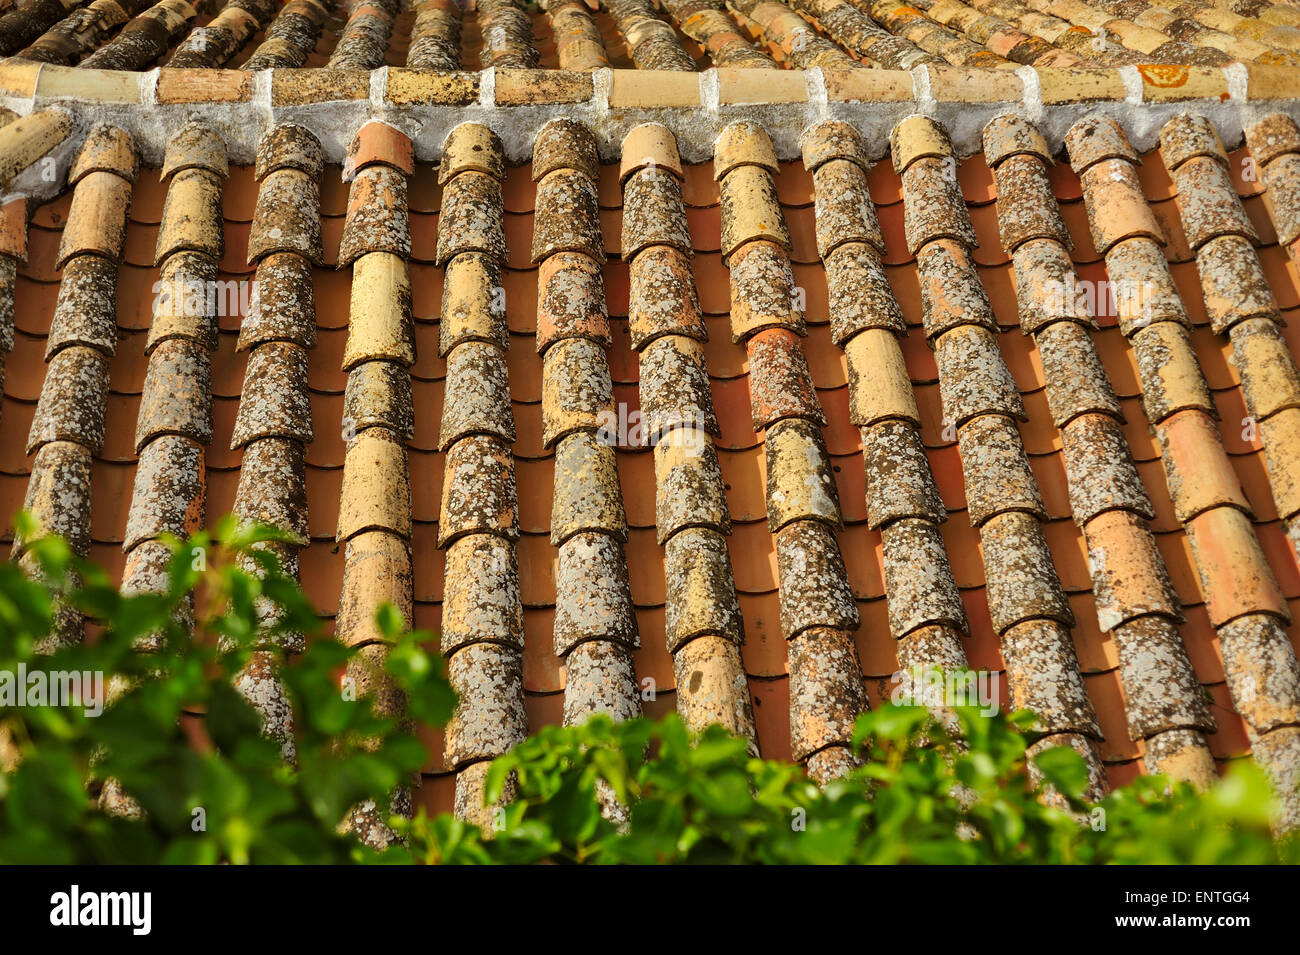 TILED ROOFTOPS SPAIN - Stock Image